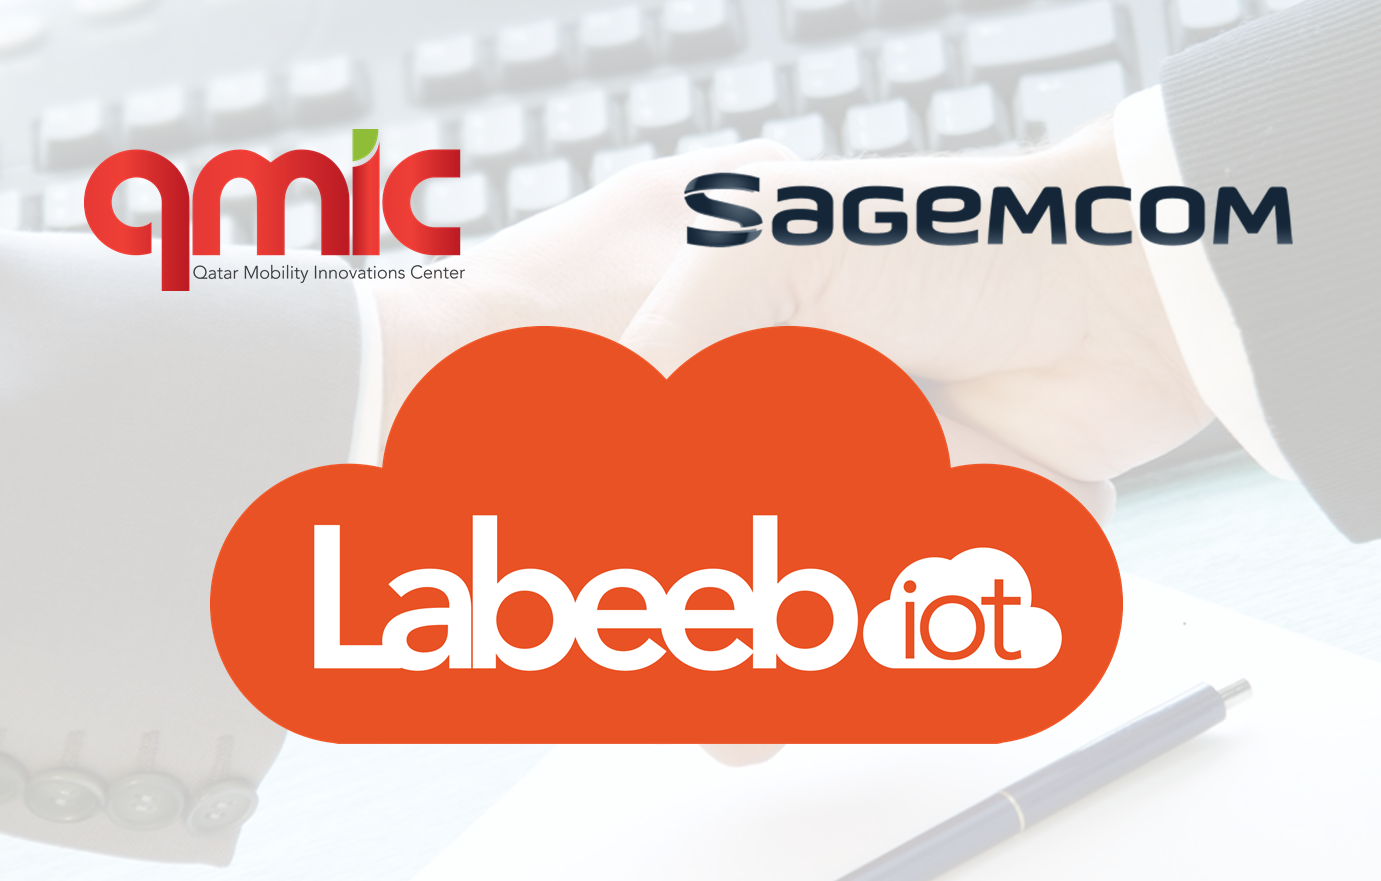 QMIC and Sagemcom partner to deliver Internet of Things solutions